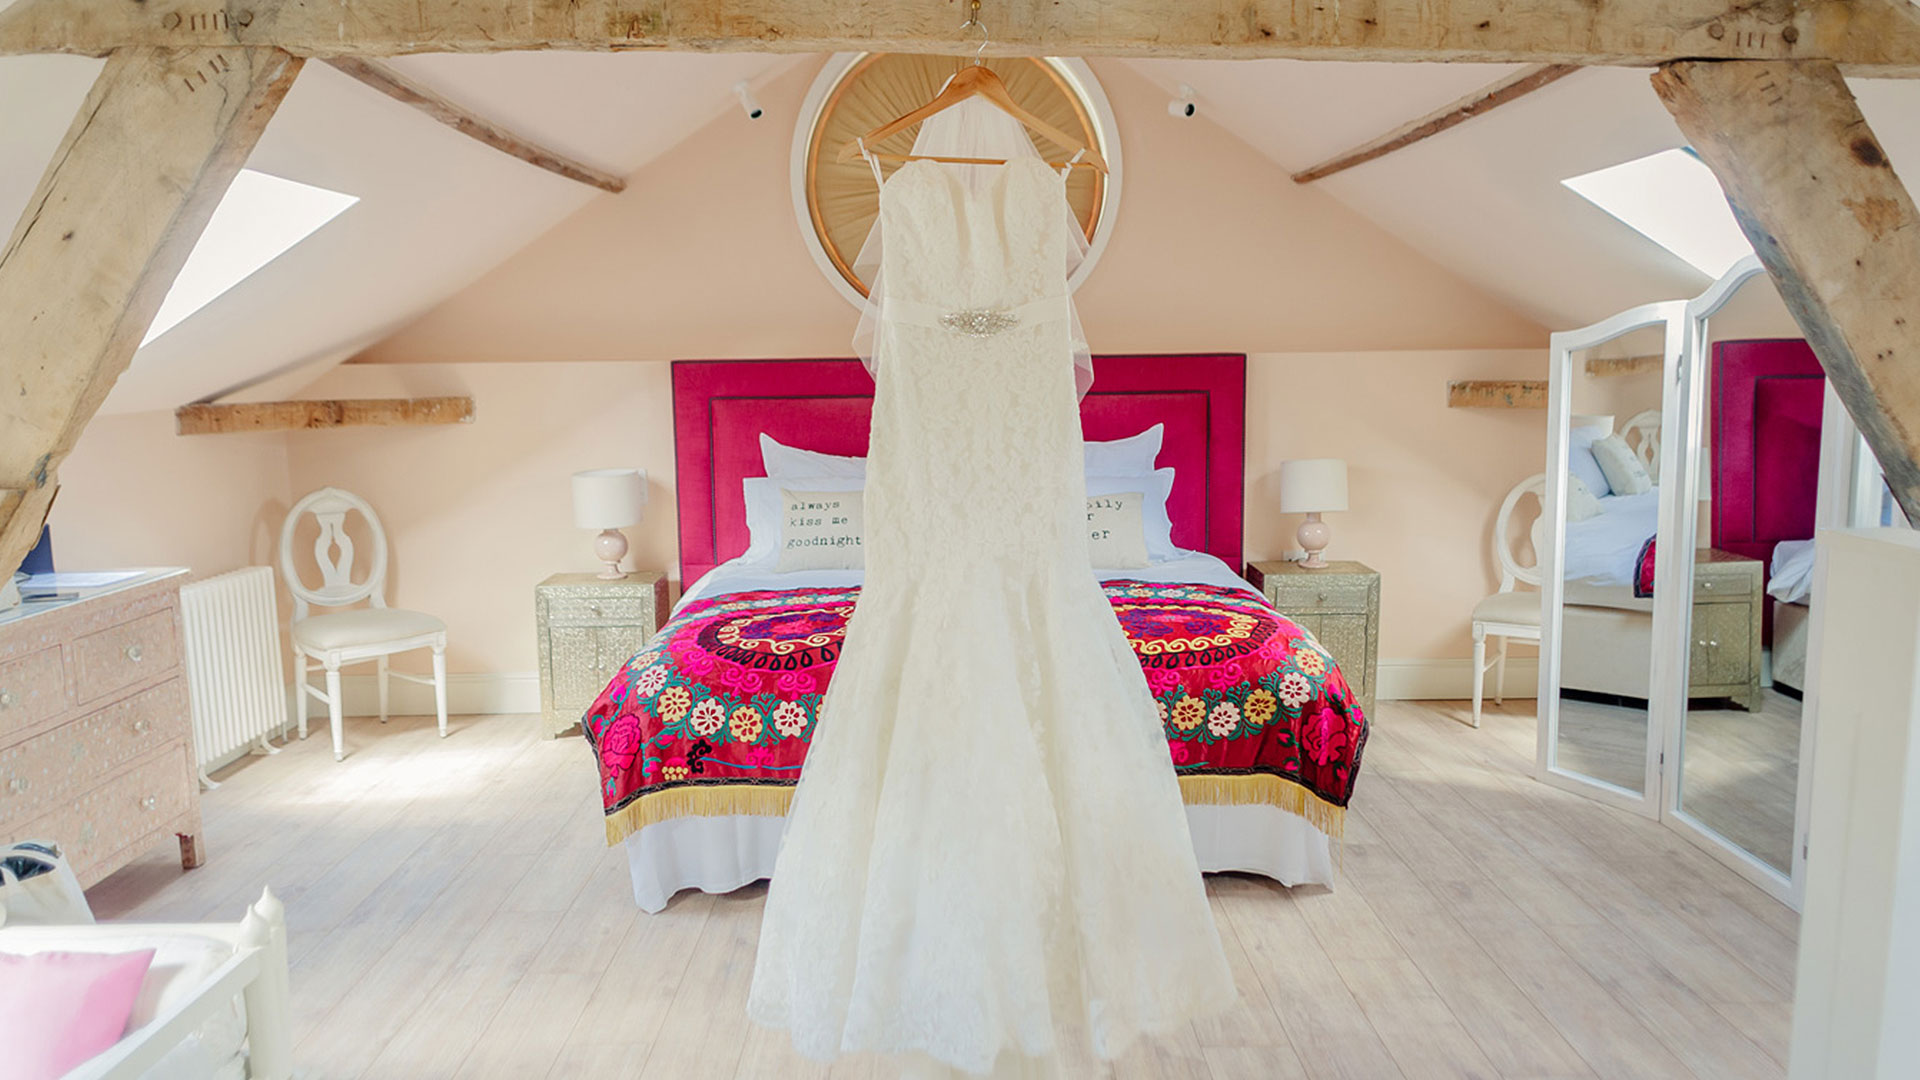 Bridal preparations can begin in the luxurious space available in the Coach House